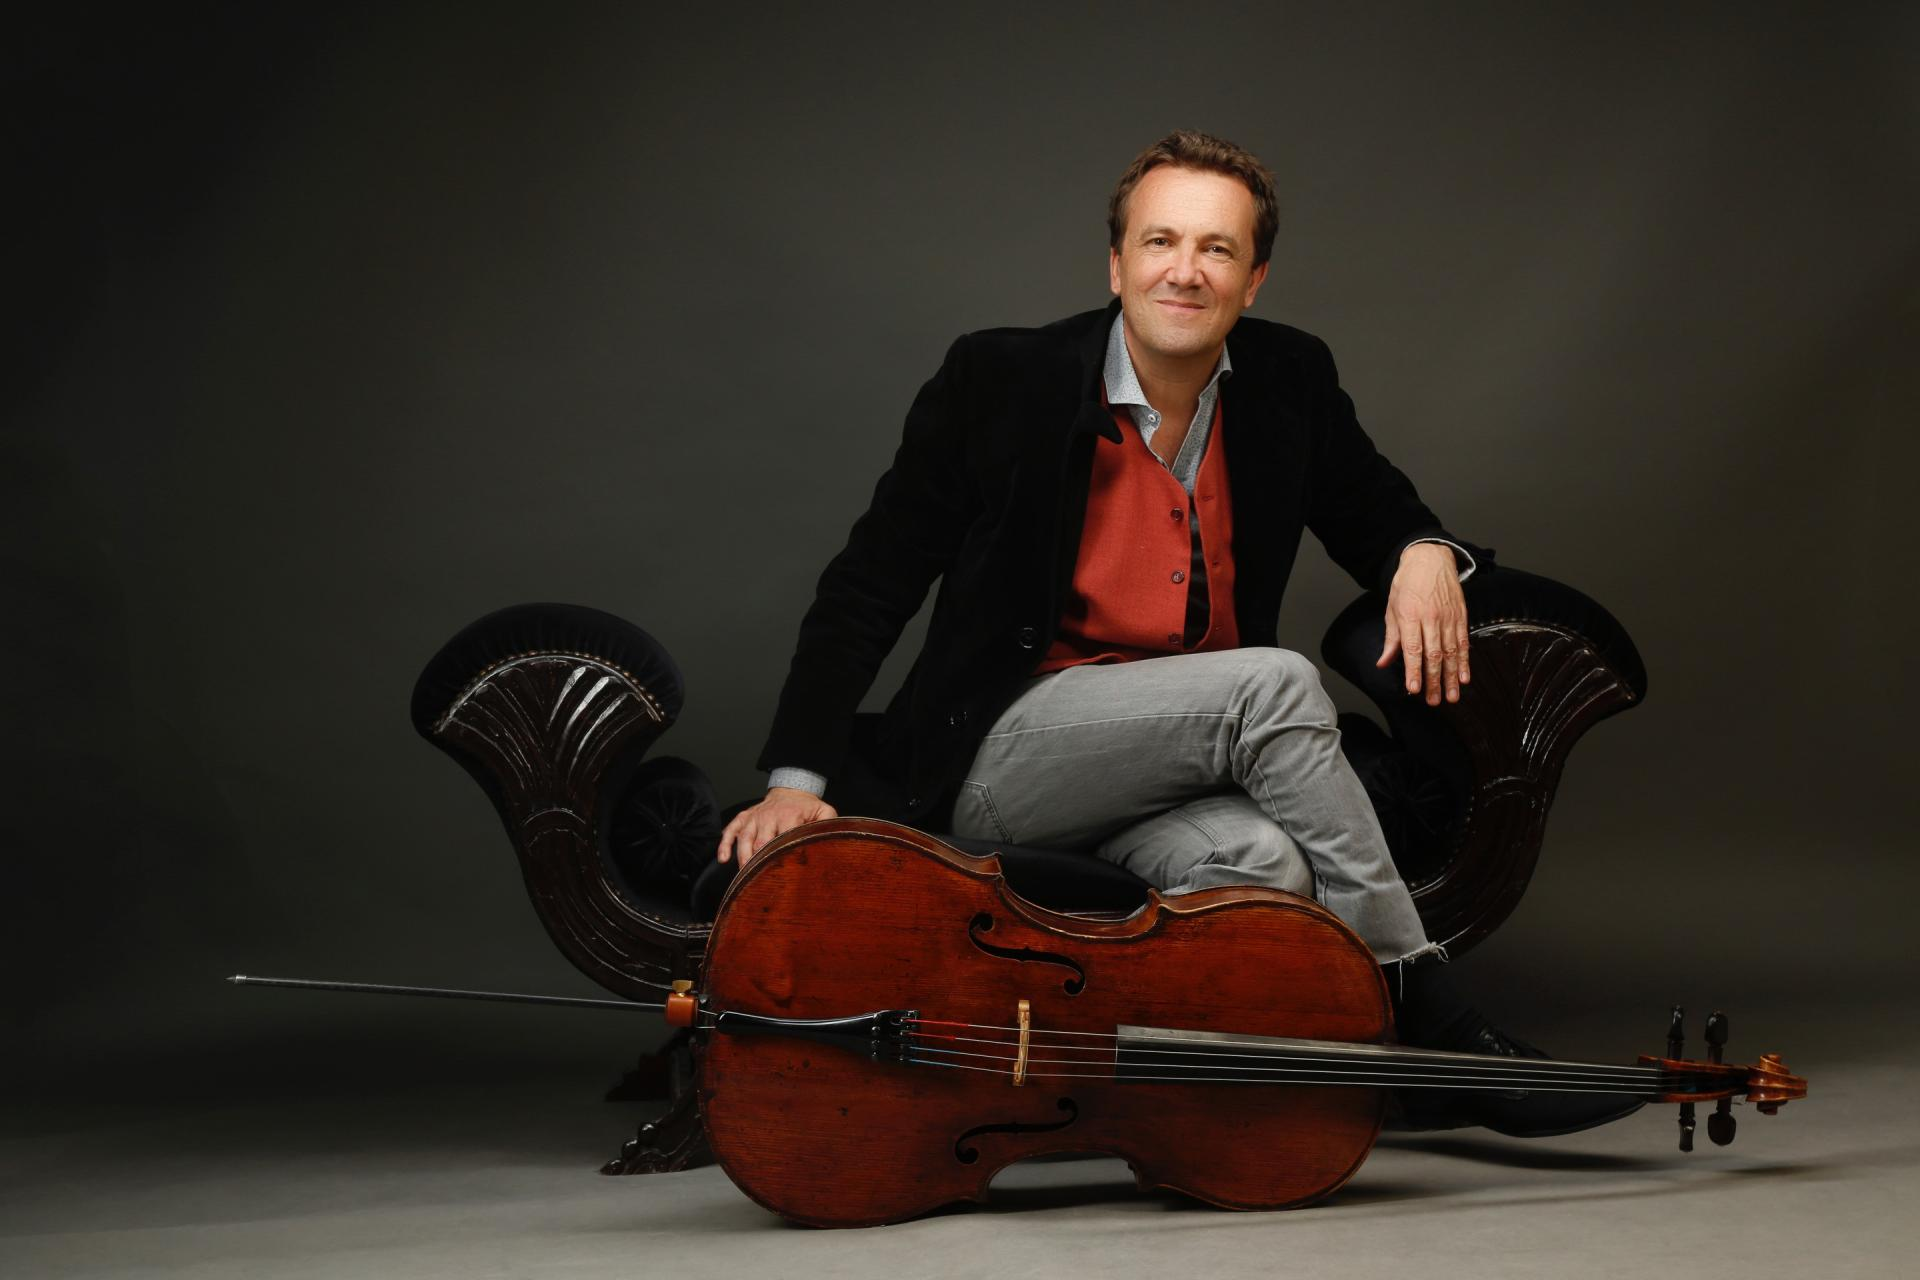 David Louwerse, cellist